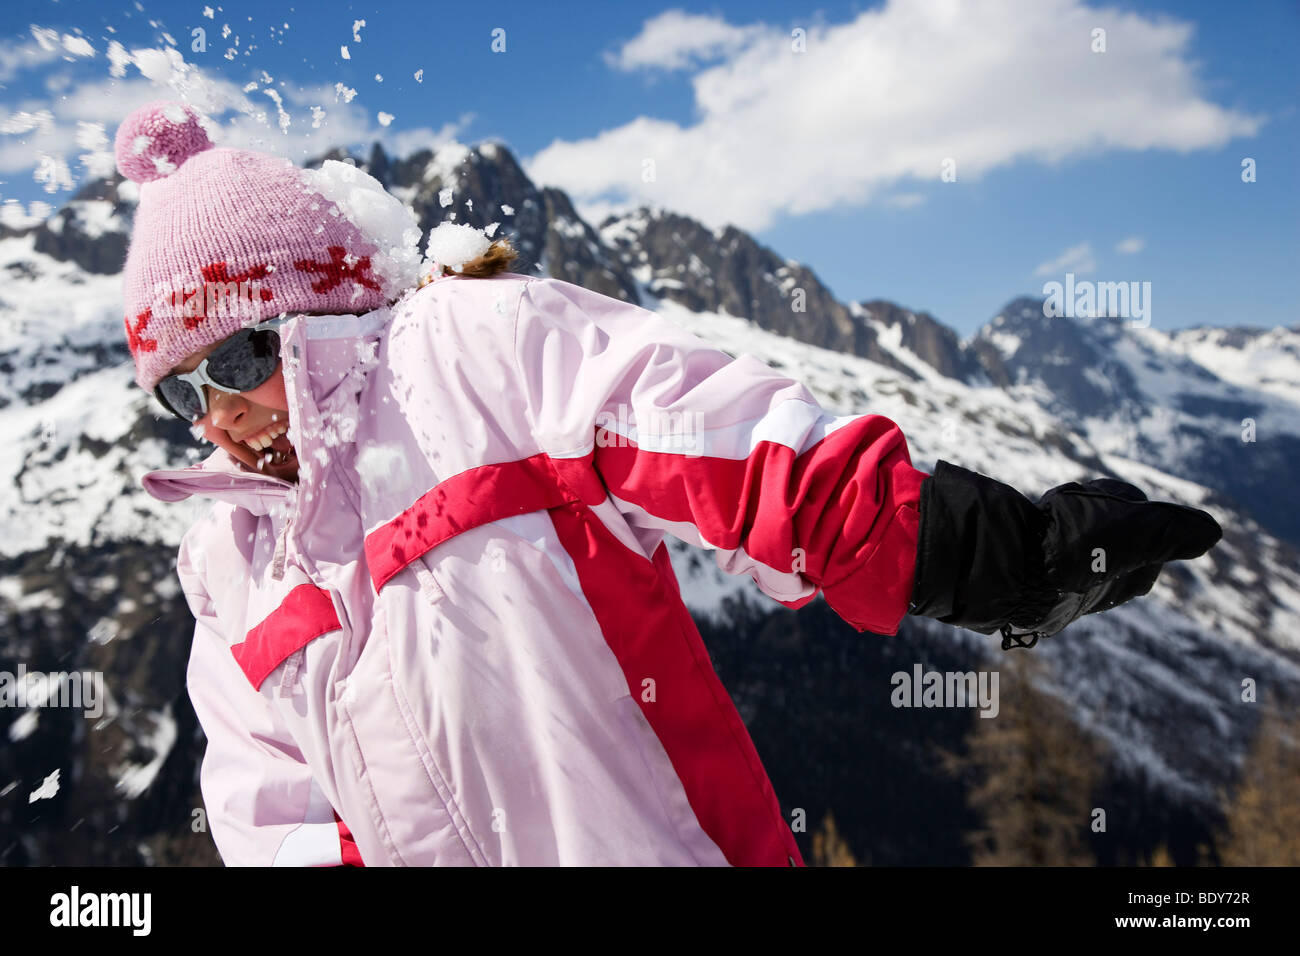 Girl in pink hit by snowball. - Stock Image